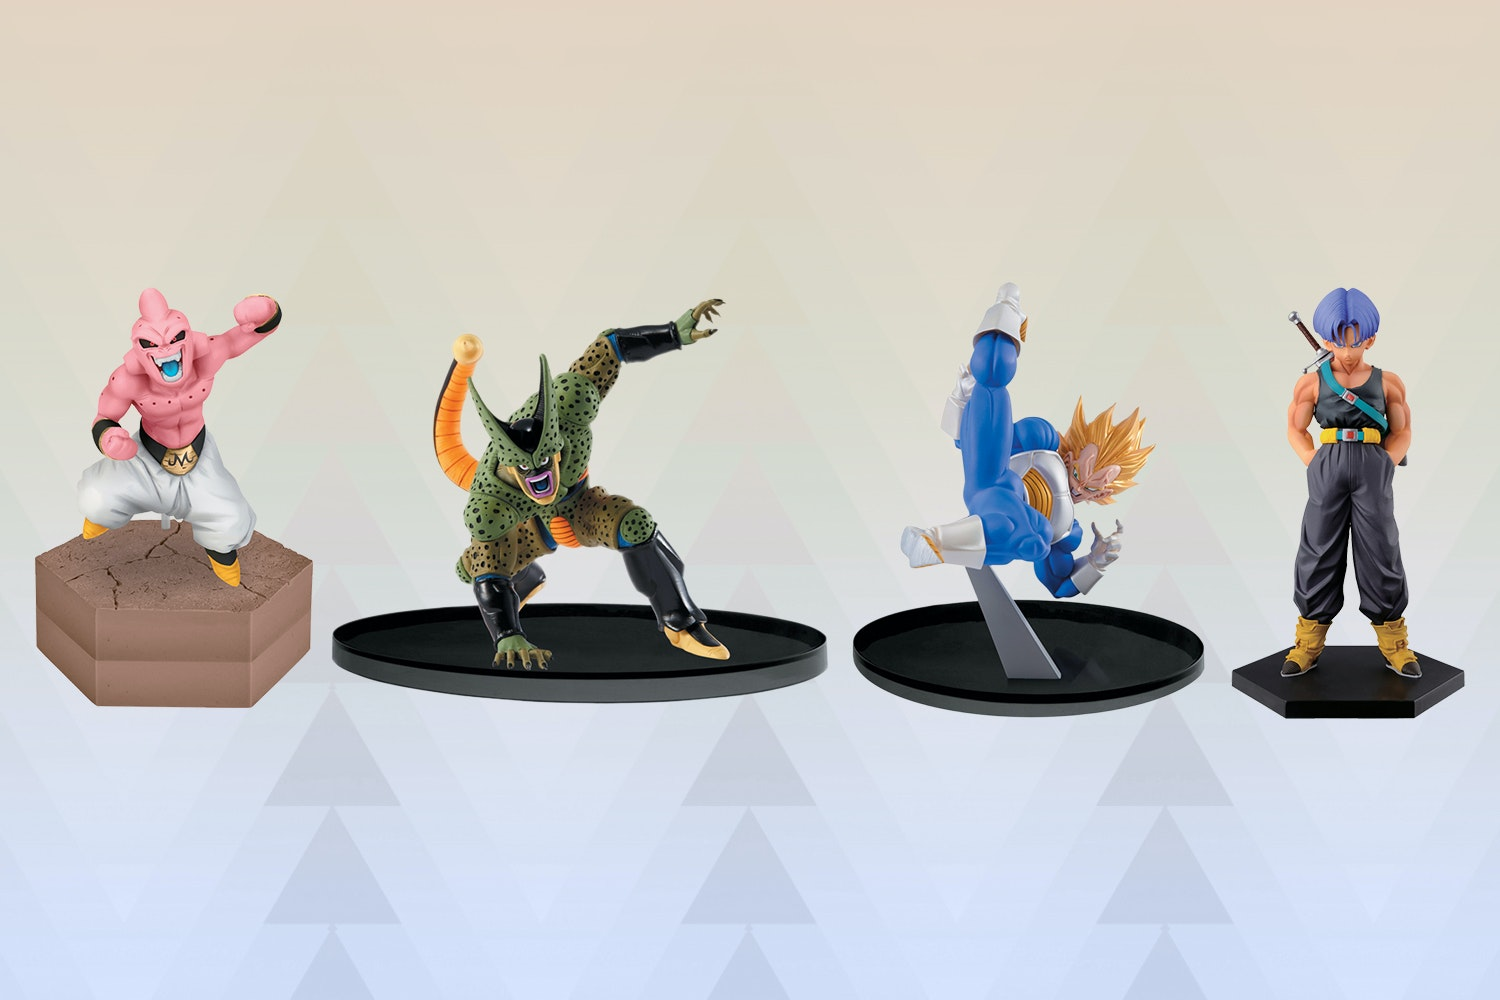 SCultures 5: Dragon Ball Z Figures (2-Piece)